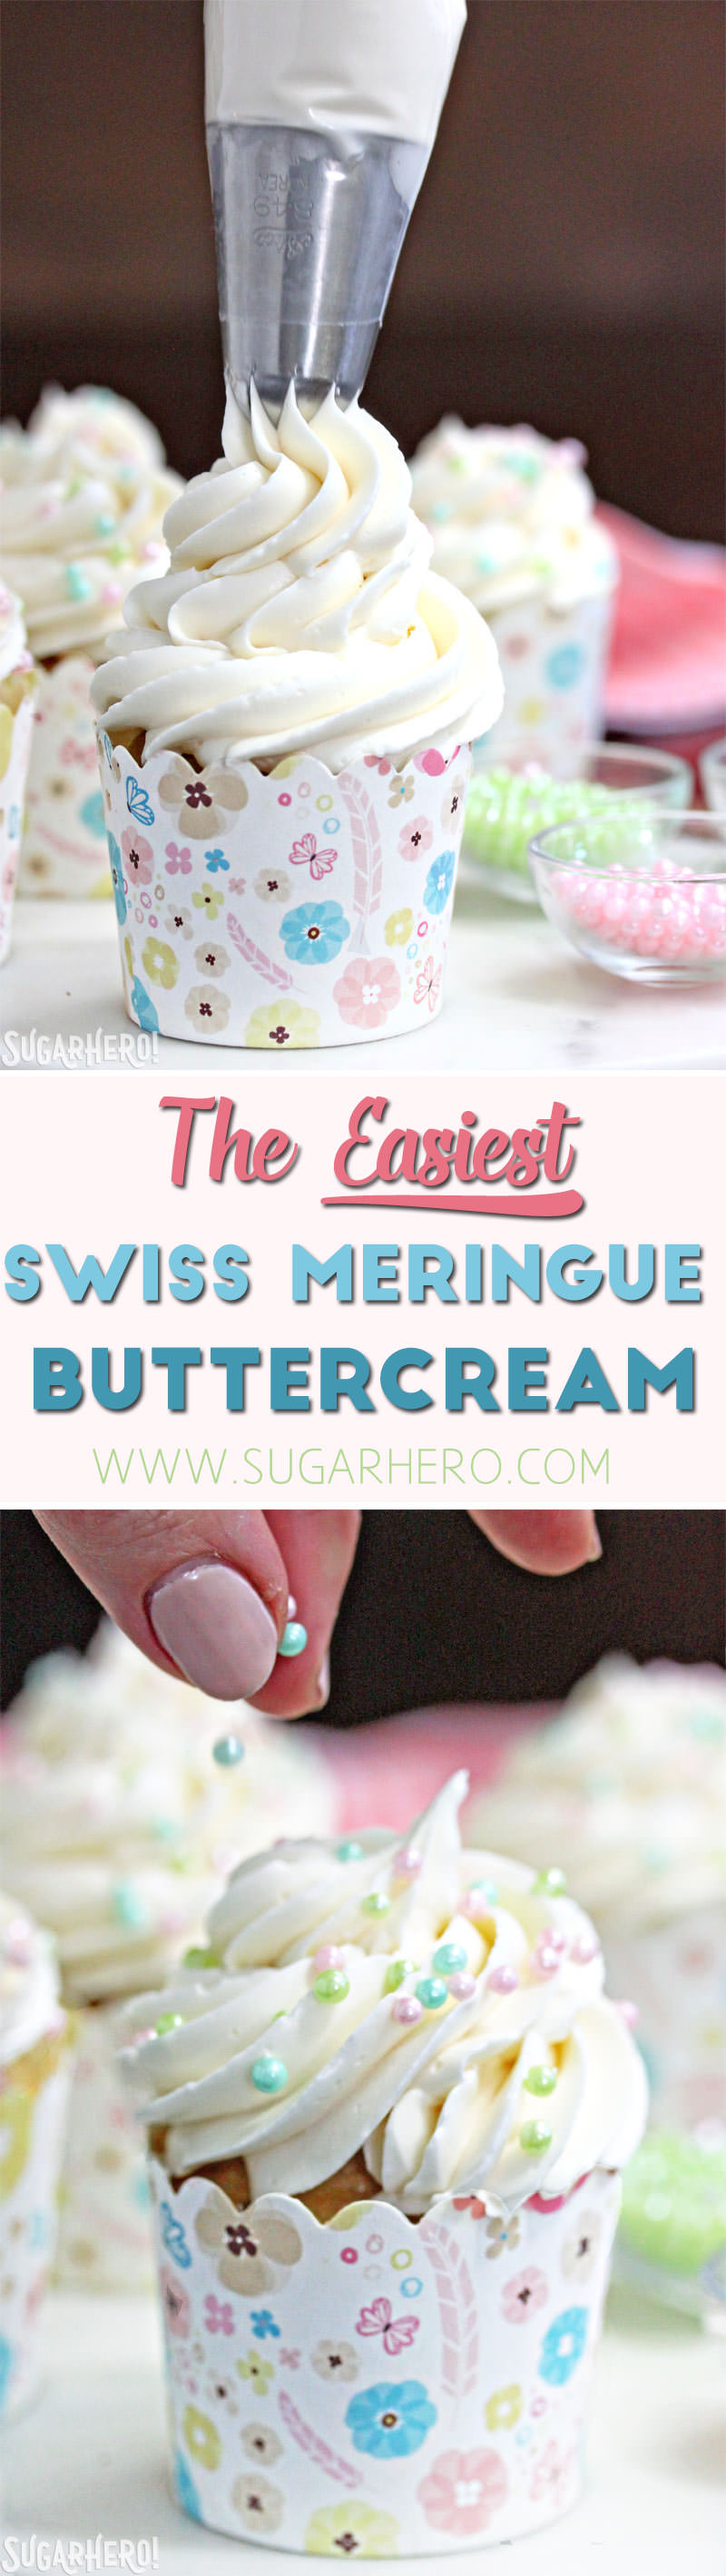 The EASIEST Swiss Meringue Buttercream Recipe! | From SugarHero.com